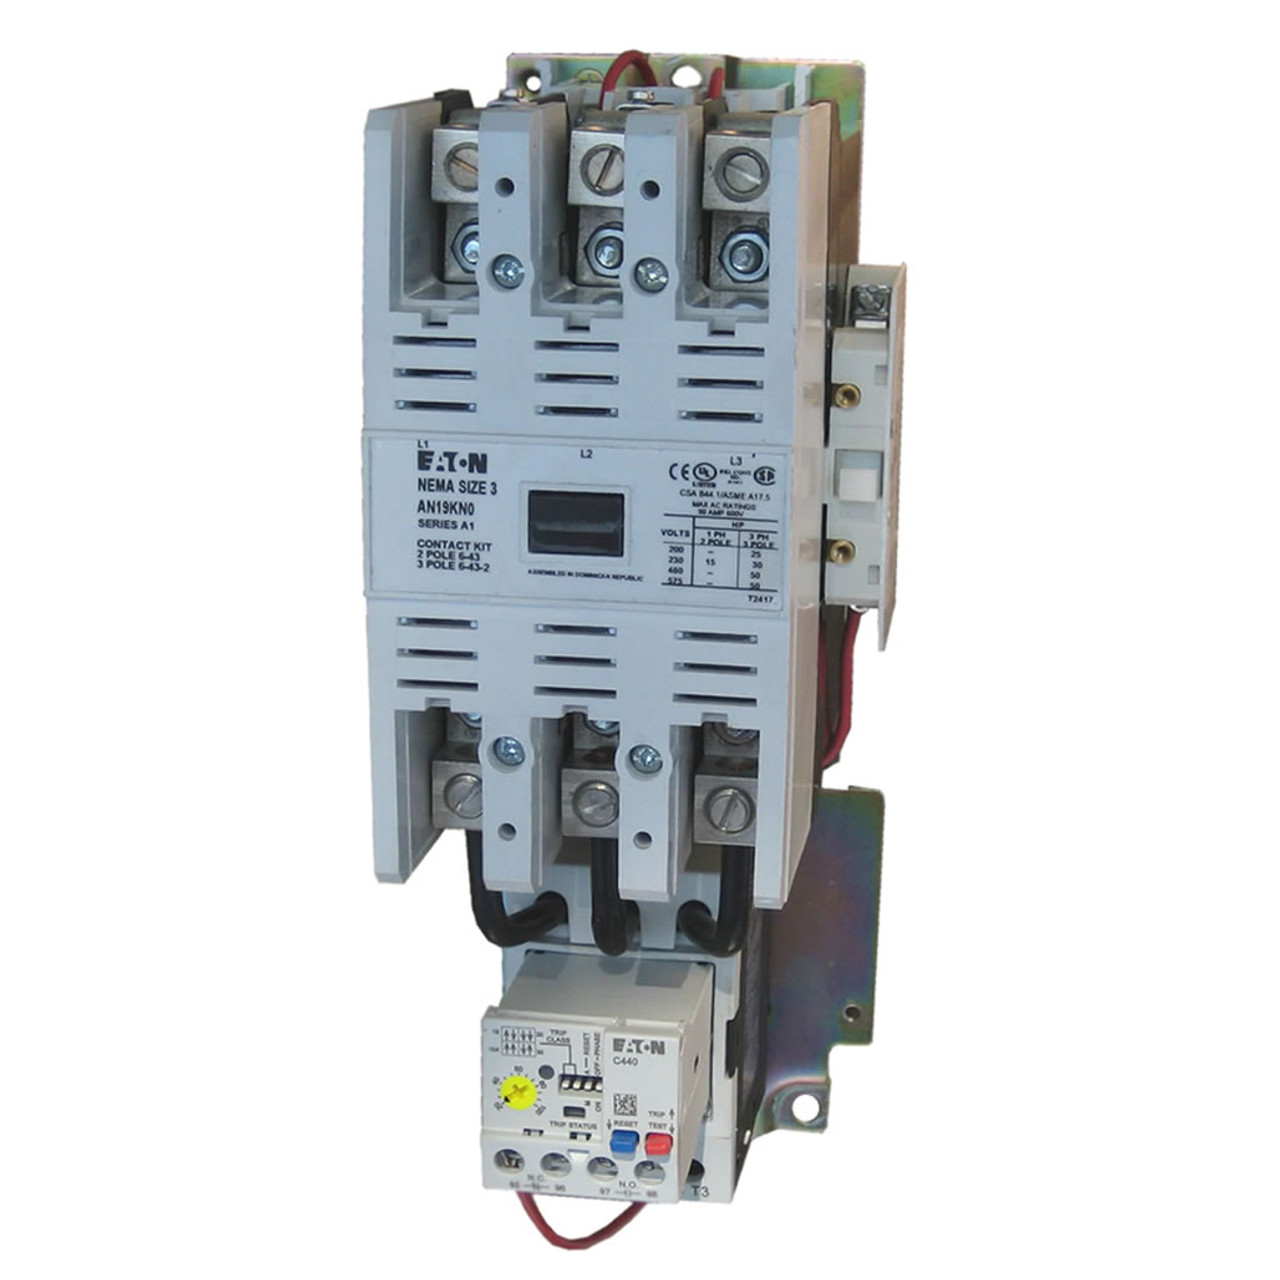 Eaton AN19KN0 90 AMP NEMA Size 3 Starter With Electronic